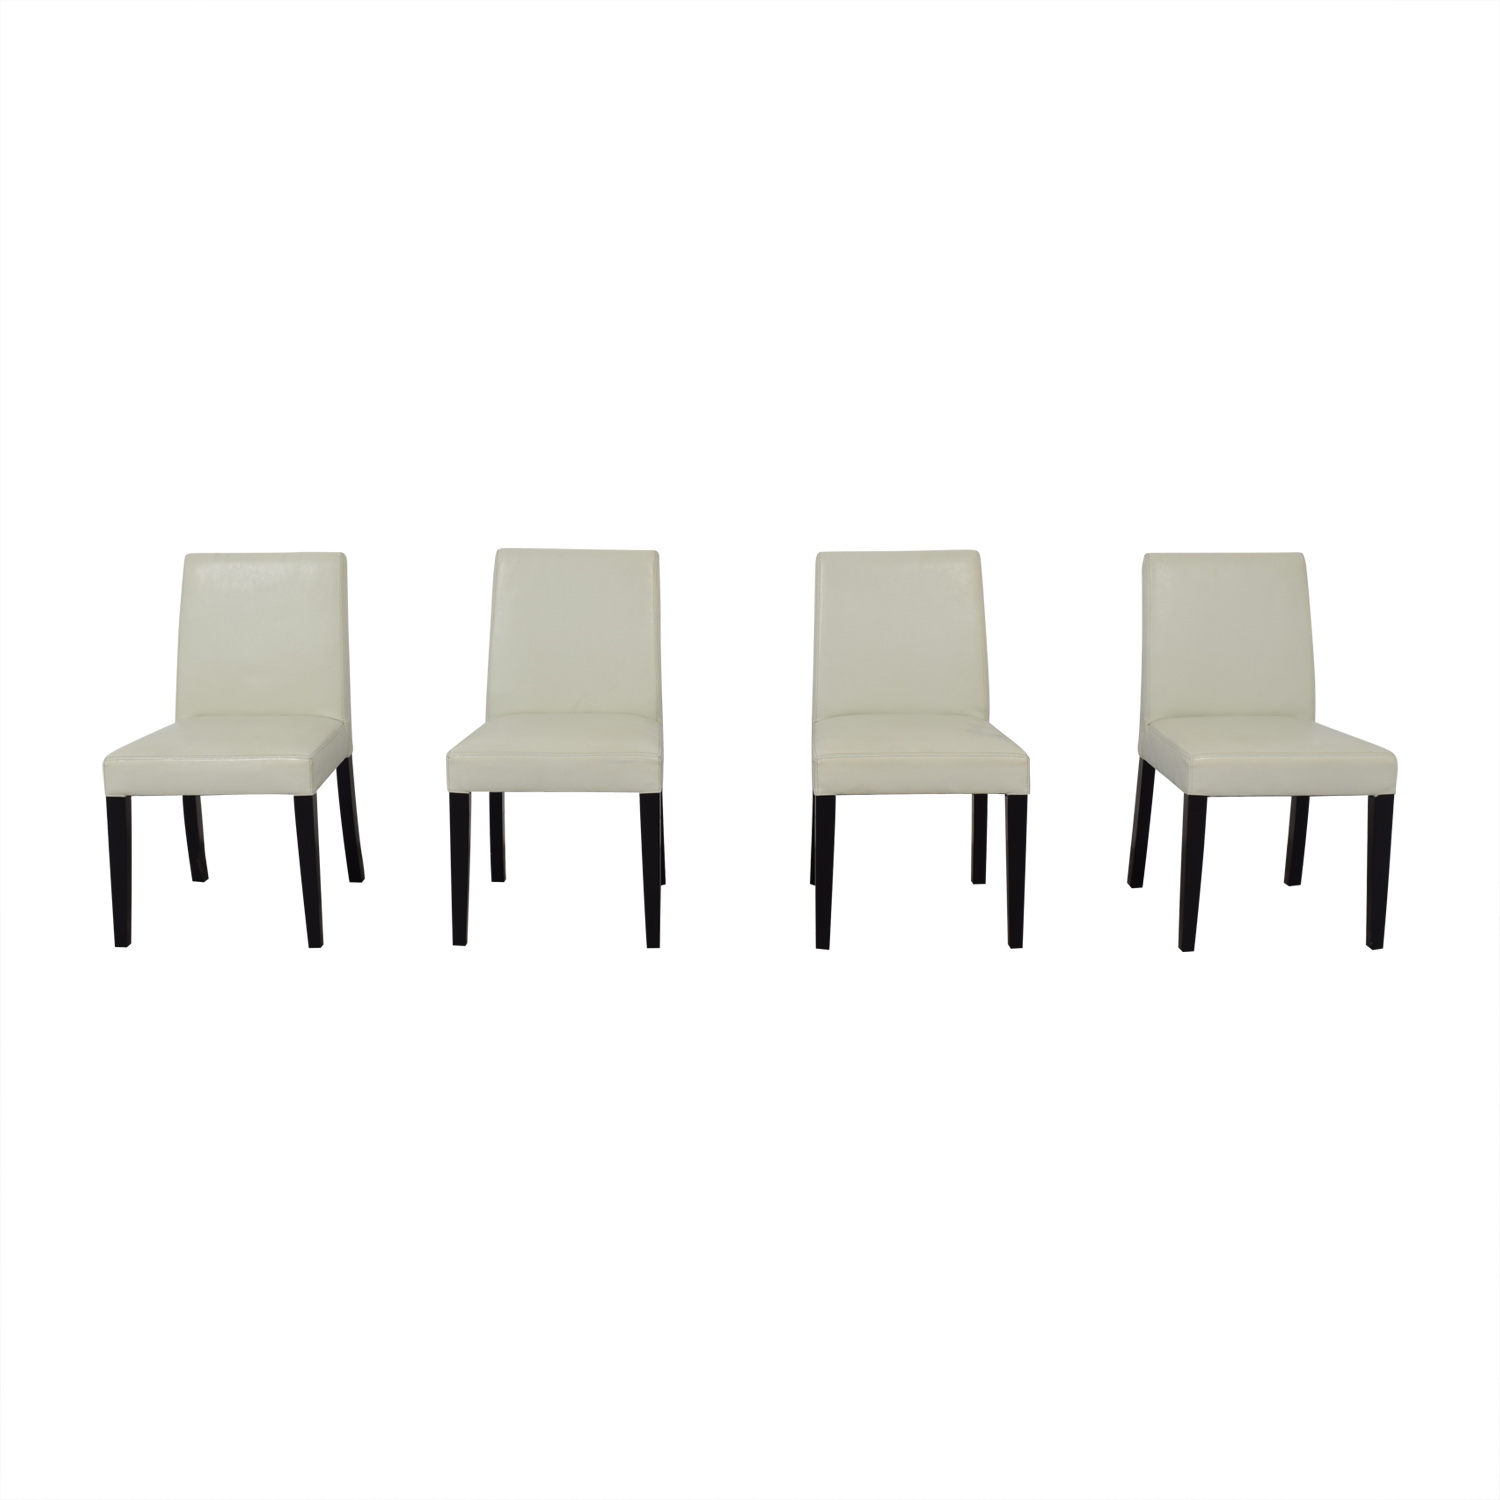 Crate & Barrel Crate & Barrel White Leather Dining Chairs coupon